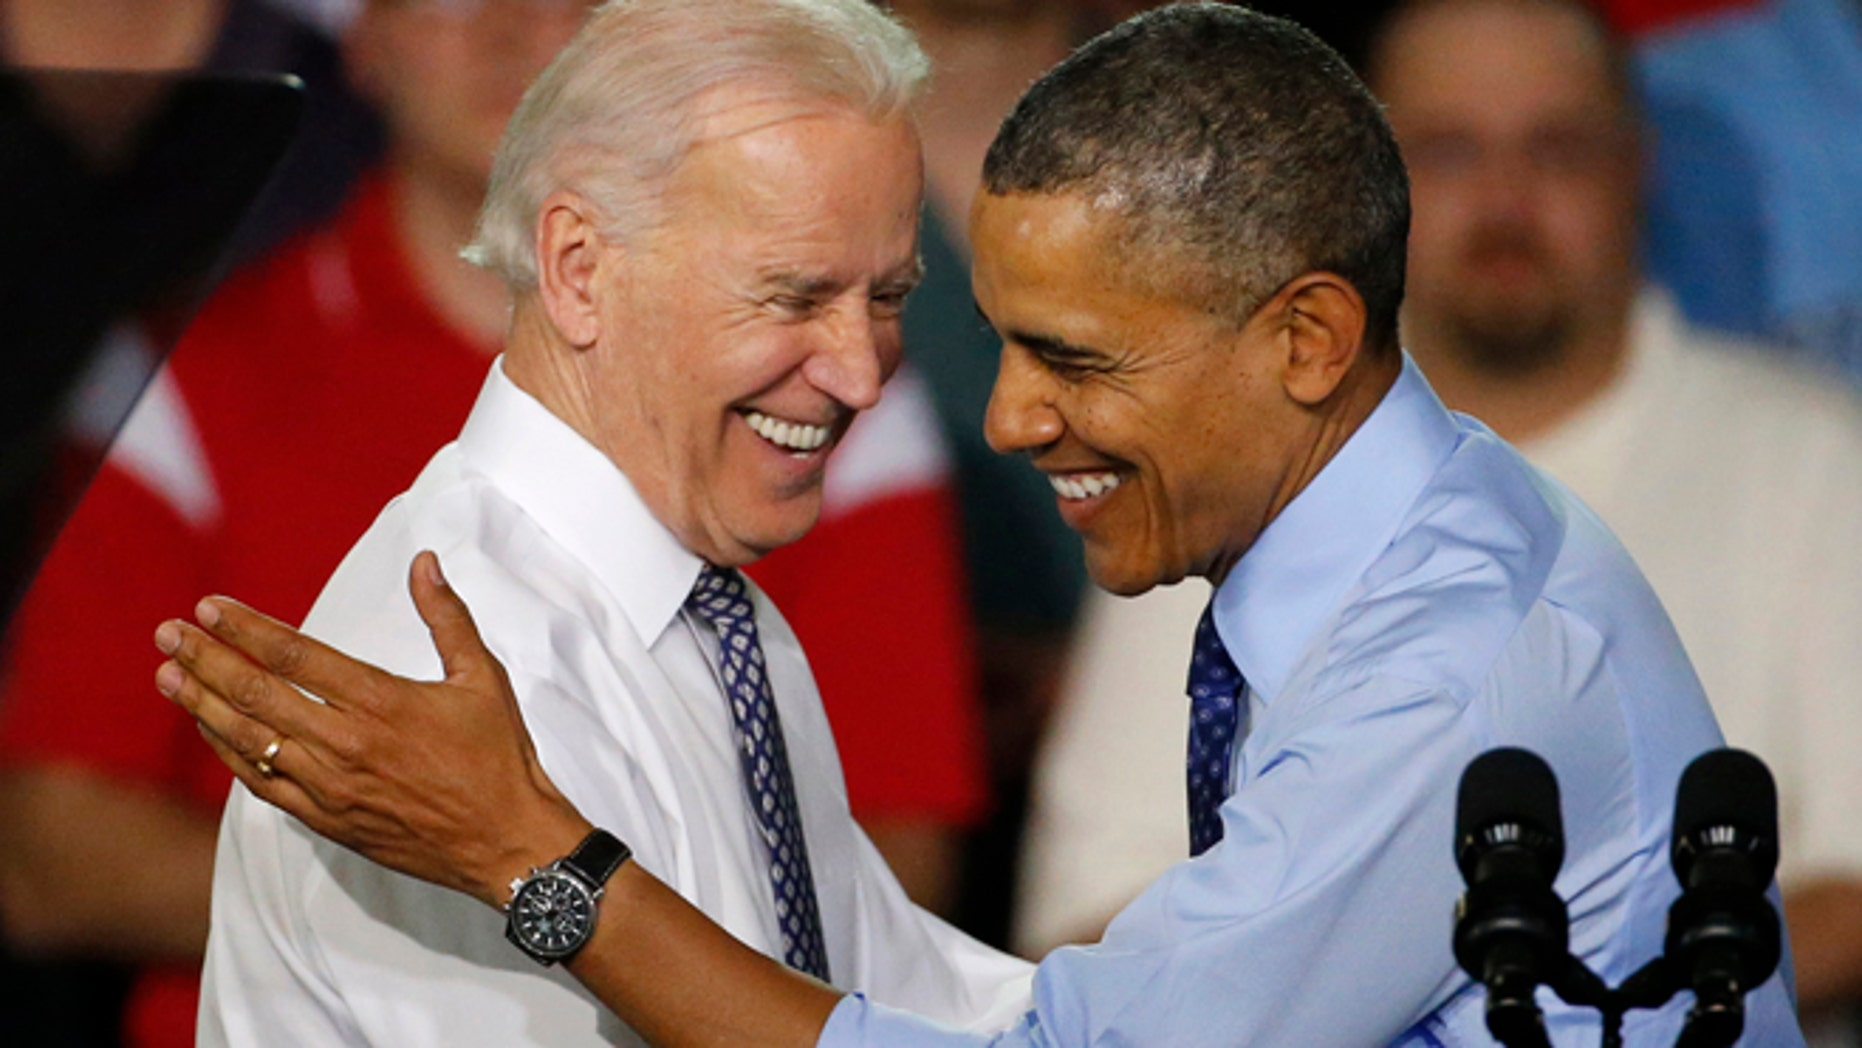 April 16, 2014: President Obama is introduced by Vice President Joe Biden as he arrives at the Community College of Allegheny County West Hills Center in Oakdale, Pa.